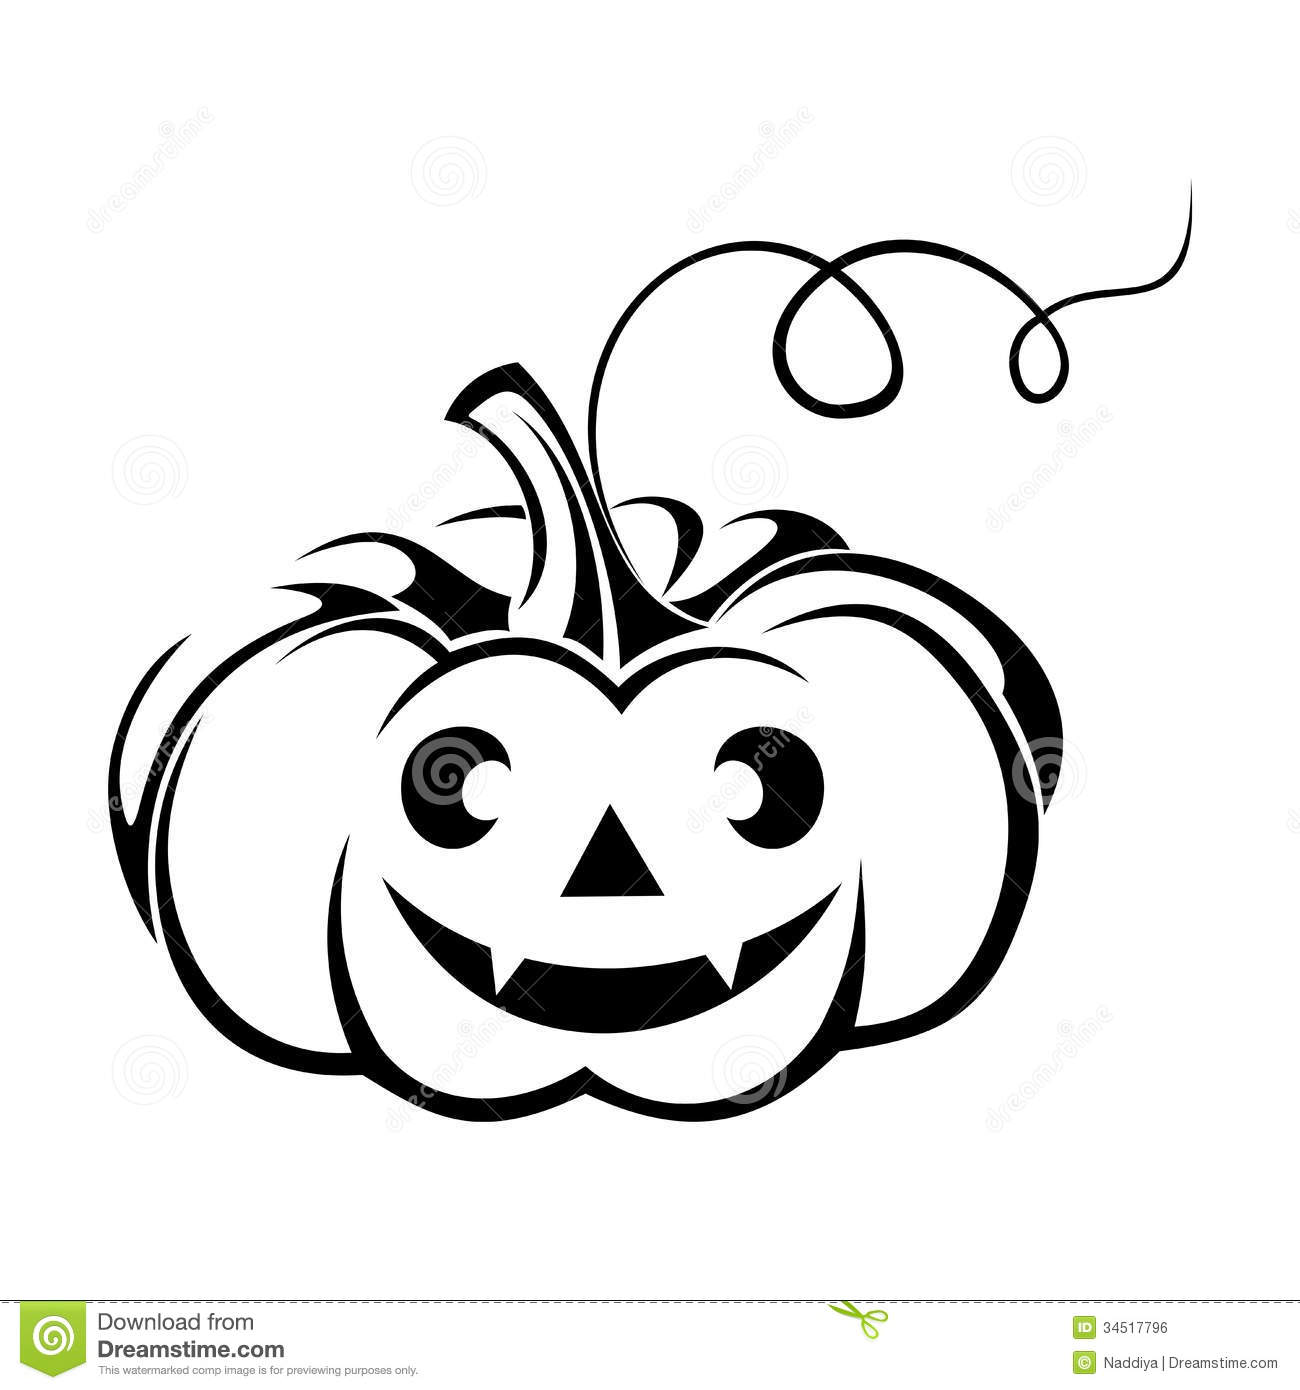 Jack O Lantern Black And White Clipart - Clipart Suggest